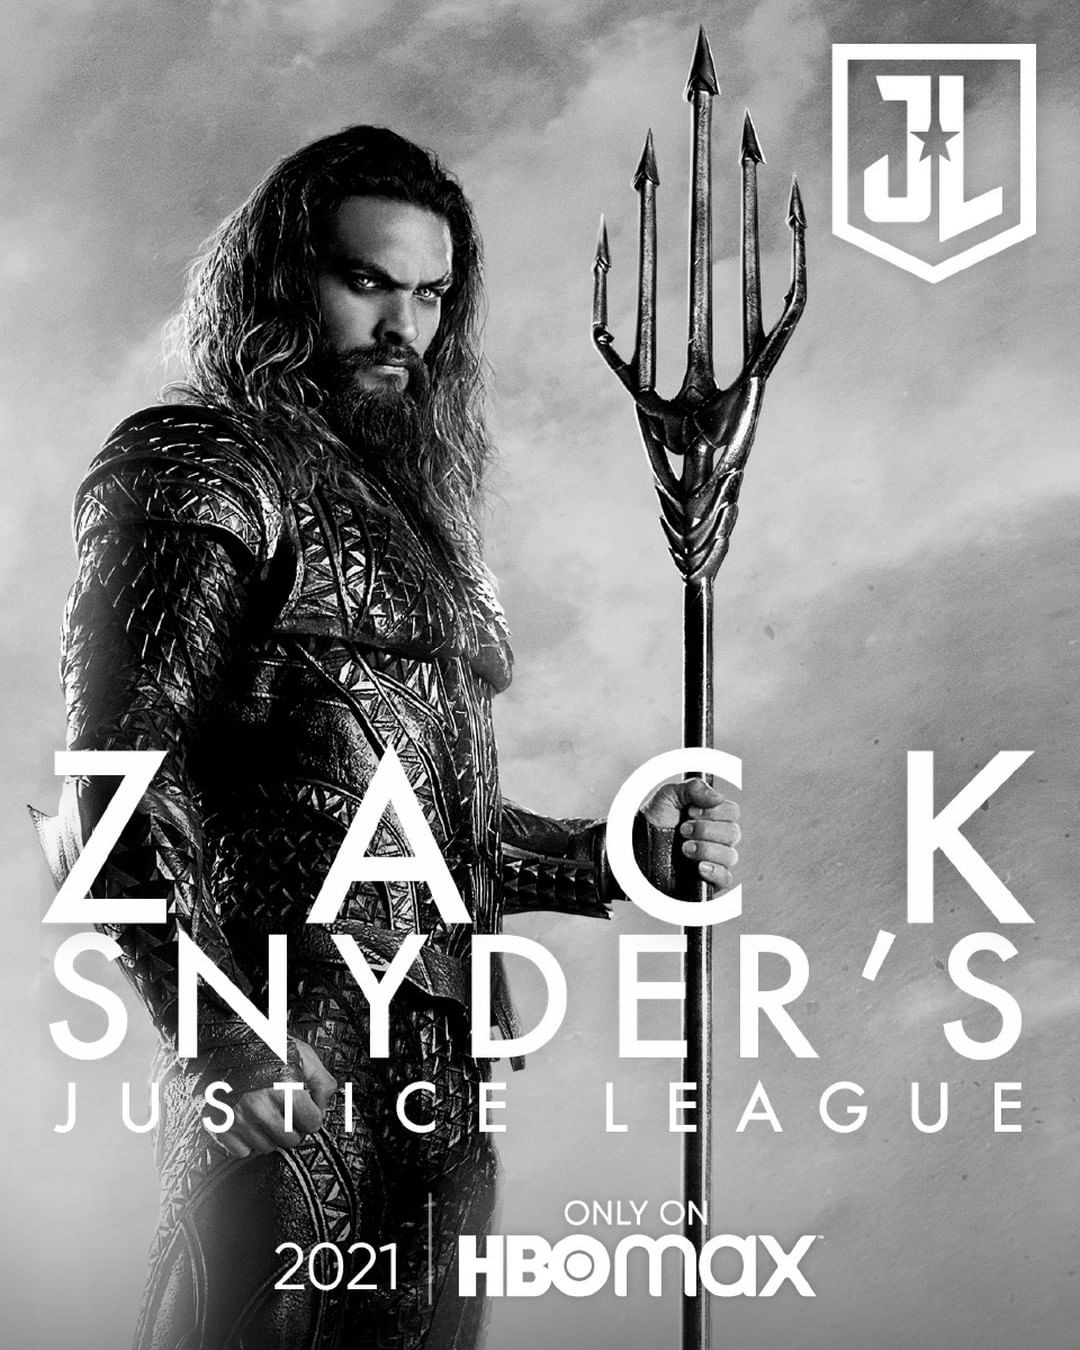 szmk_hbo_justice_league_snydercut_zack_snyder_batman_dc_comics_superman_aquaman_wonder_woman_cyborg_darkseid_7.jpg